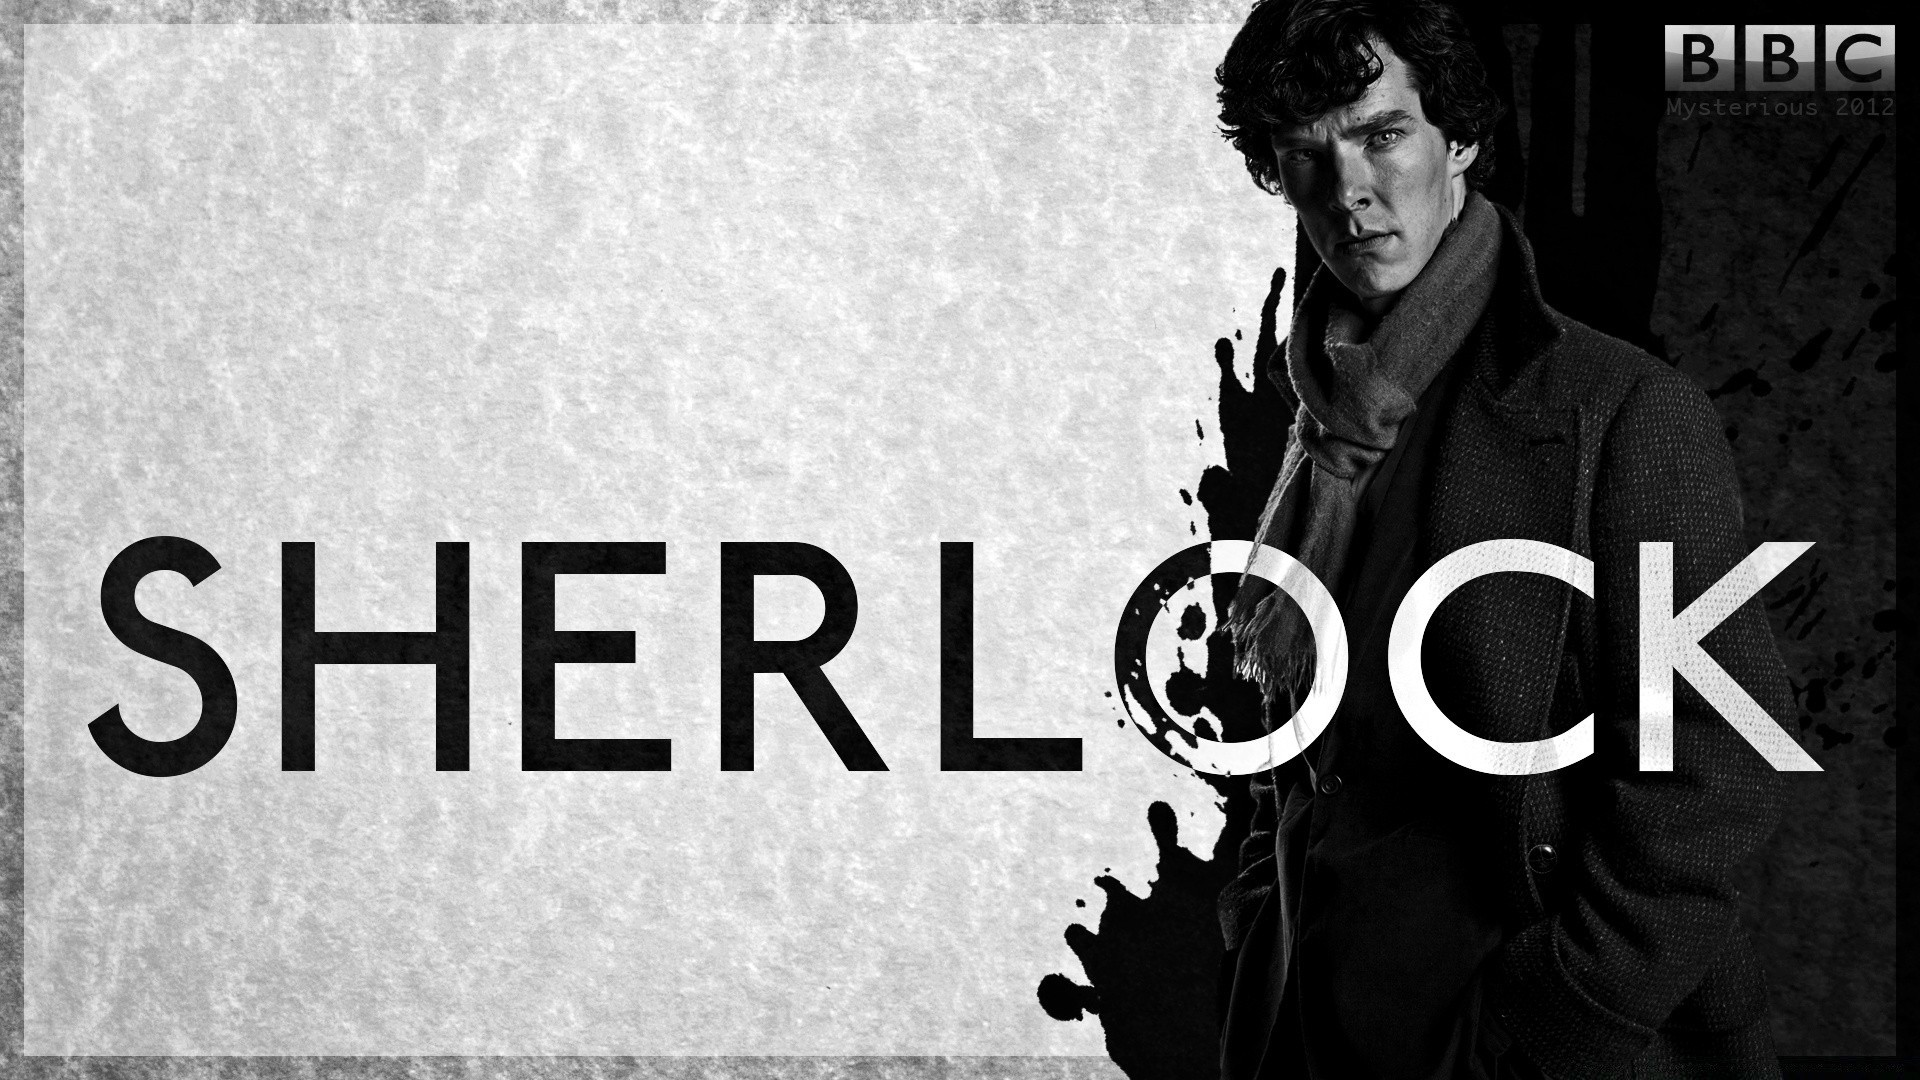 Sherlock IPhone Wallpapers For Free